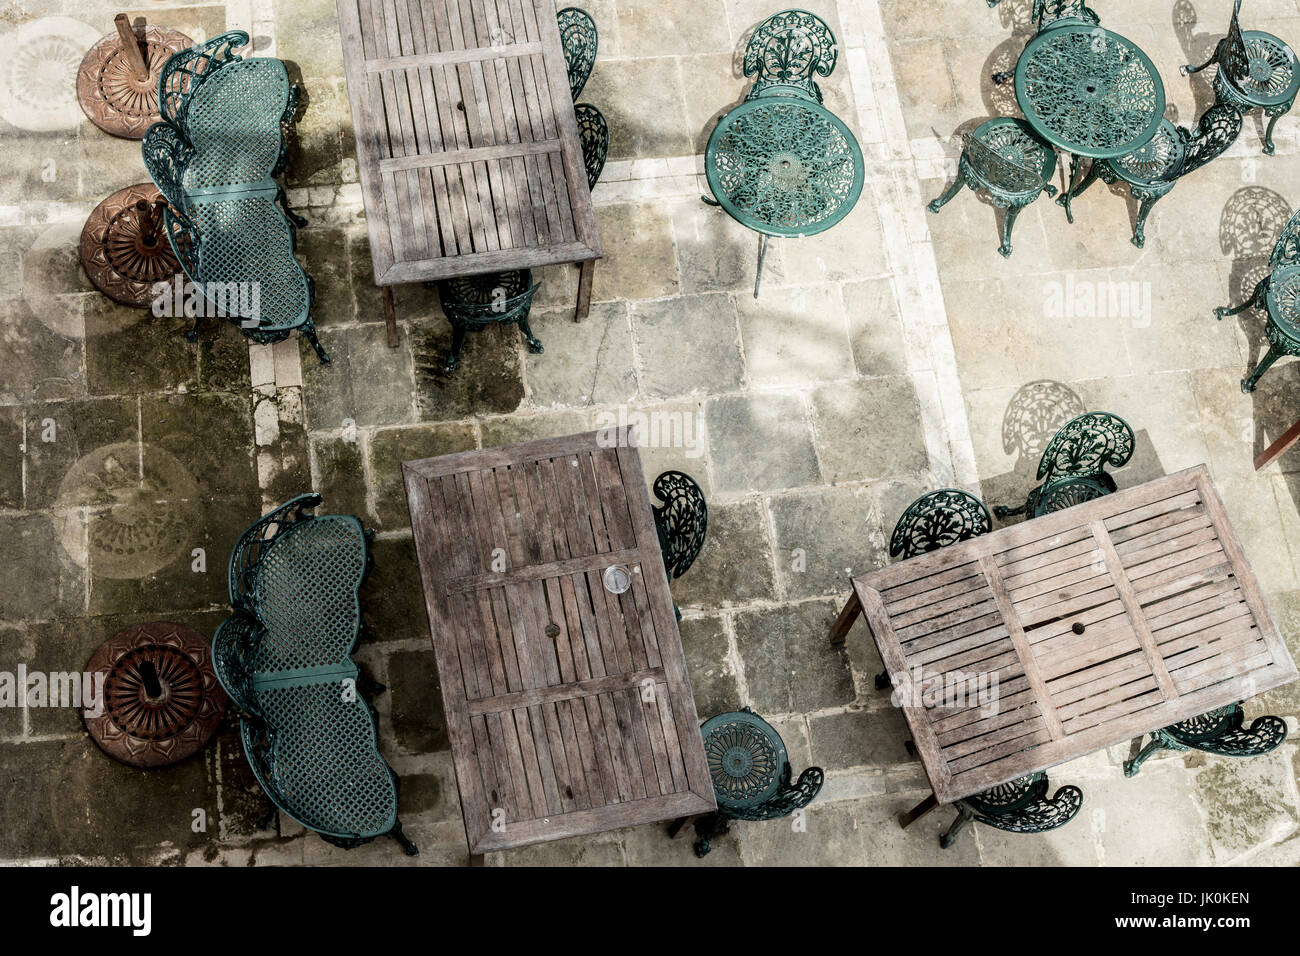 Dining tables and chairs at an outdoor restaurant - Stock Image